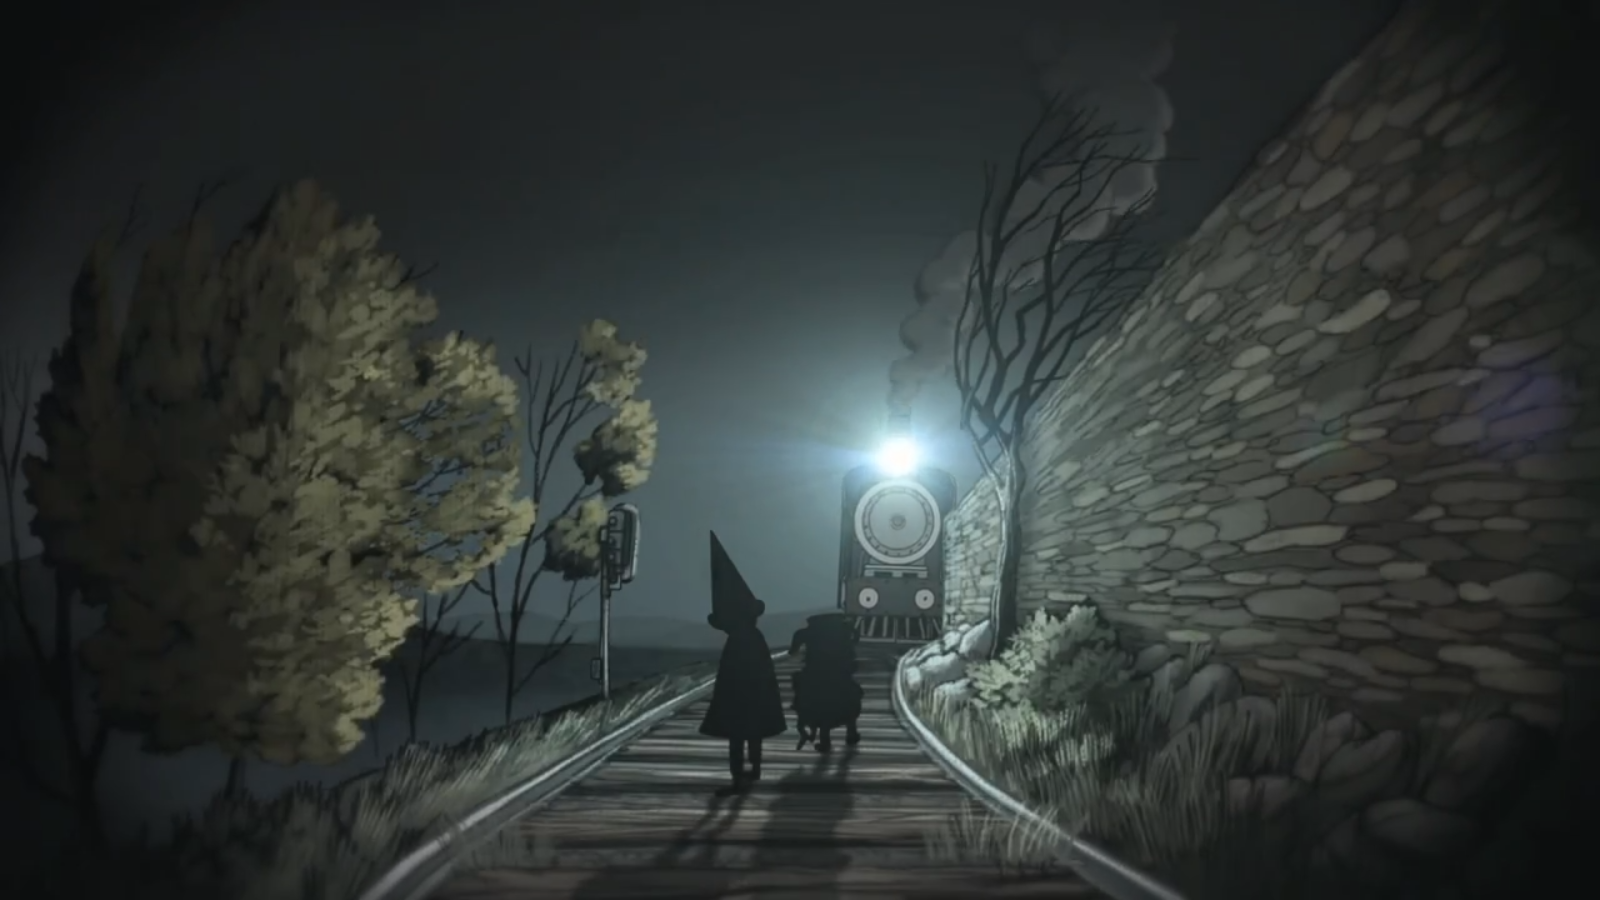 This is an image from the show Over the Garden Wall.